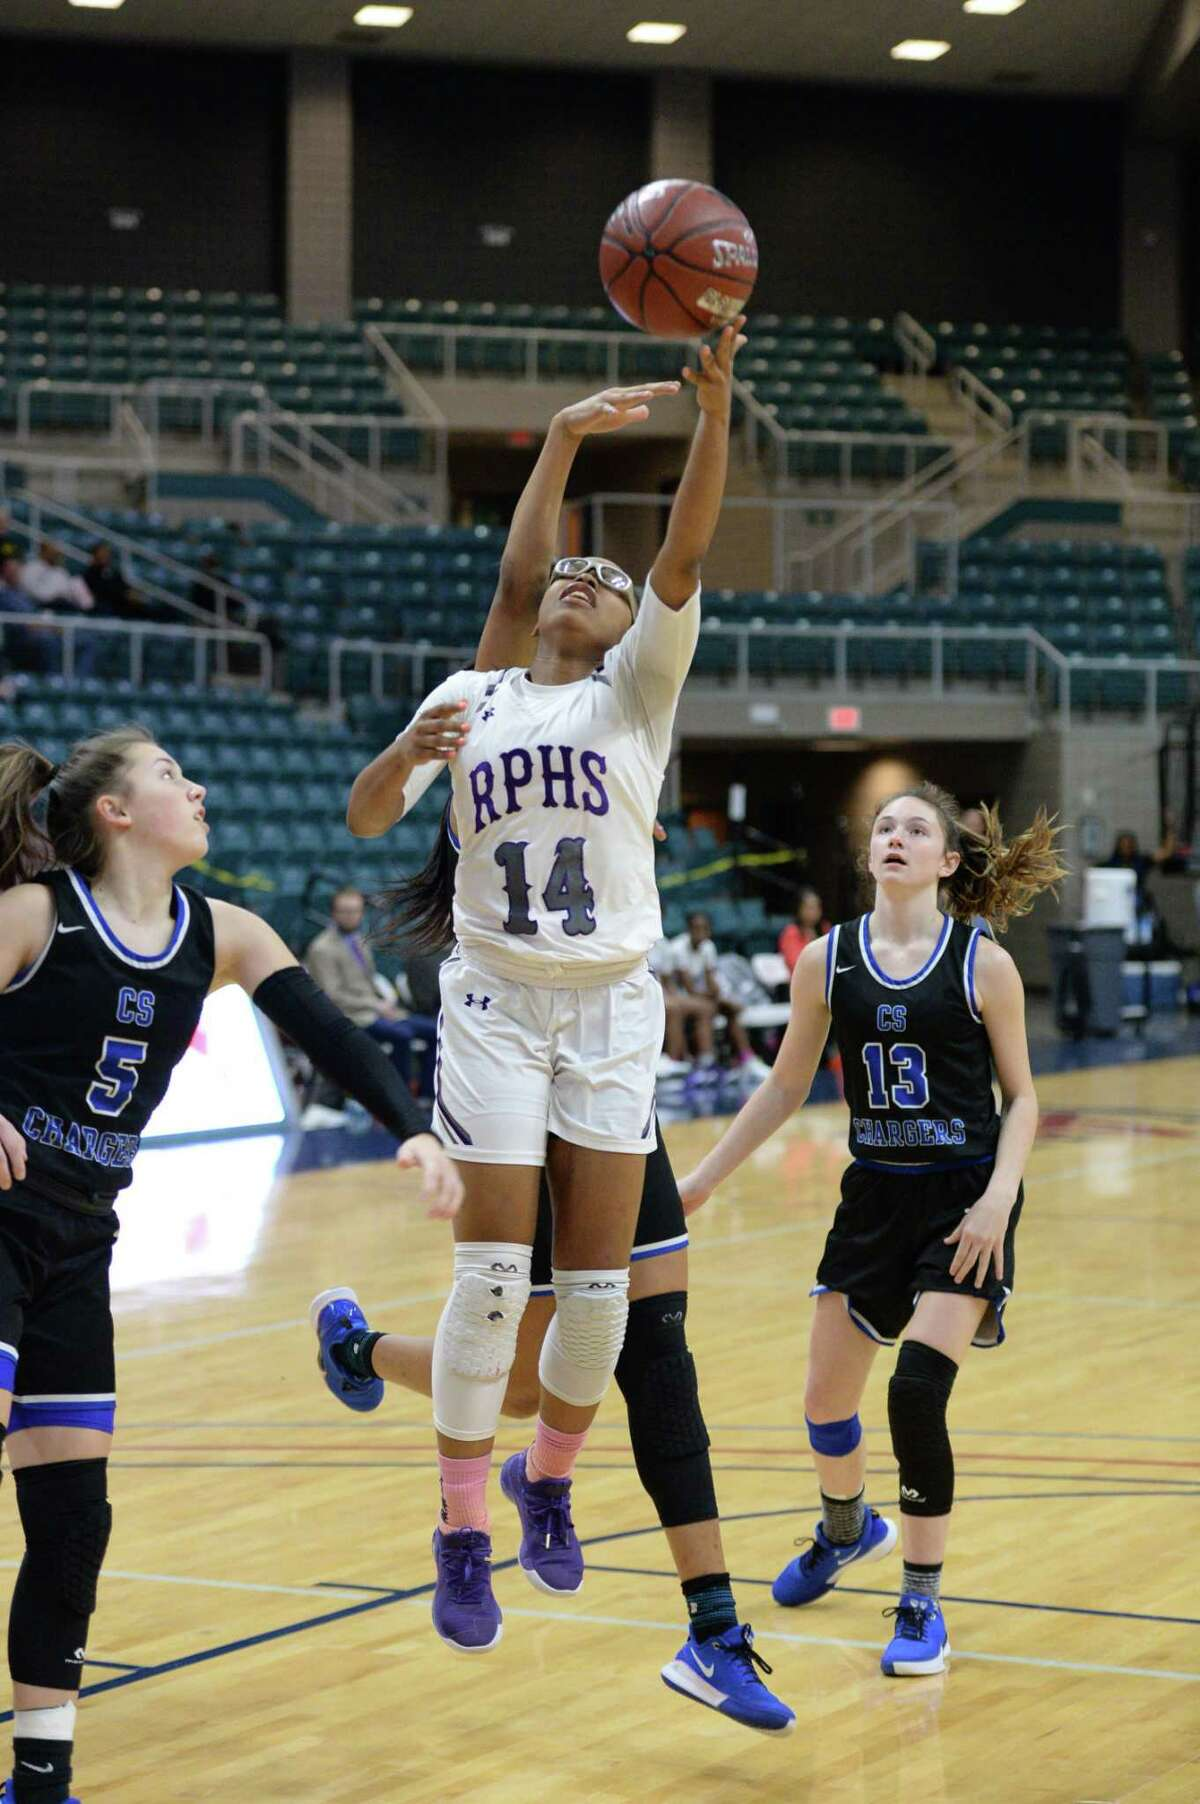 Aleighyah Fontenot (14) of Ridge Point drives for a lay-up during the first quarter of a Girls 6A Region III semifinal play-off game between the Ridge Point Panthers and the Clear Springs Chargers on Friday, February 28, 2020 at the Leonard Merrell Center, Katy, TX.